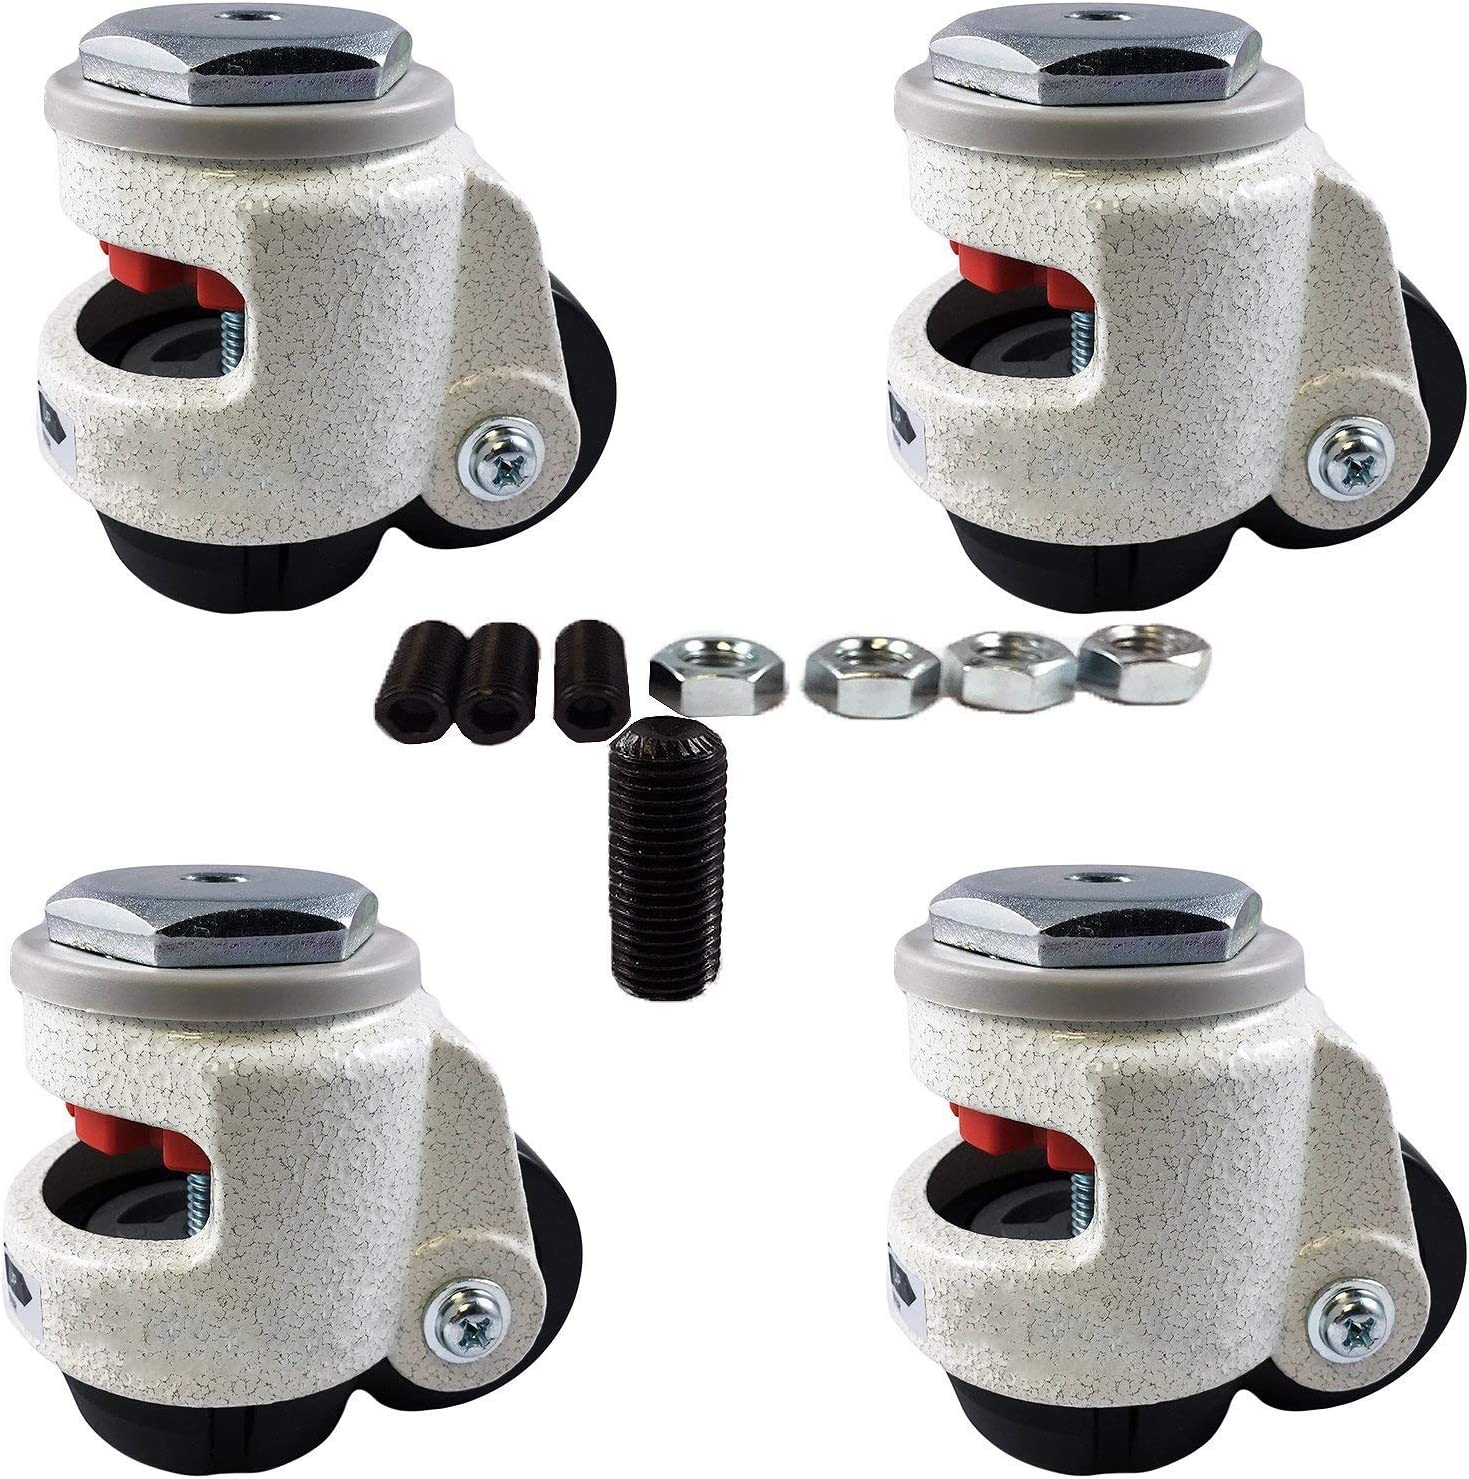 CasterHQ Wheel Master - Retractable Leveling Machine Stem Casters - 4 Pack - 2,400 lbs Per Set - Threaded Stem Version - 12MM Bolts/Hardware Included